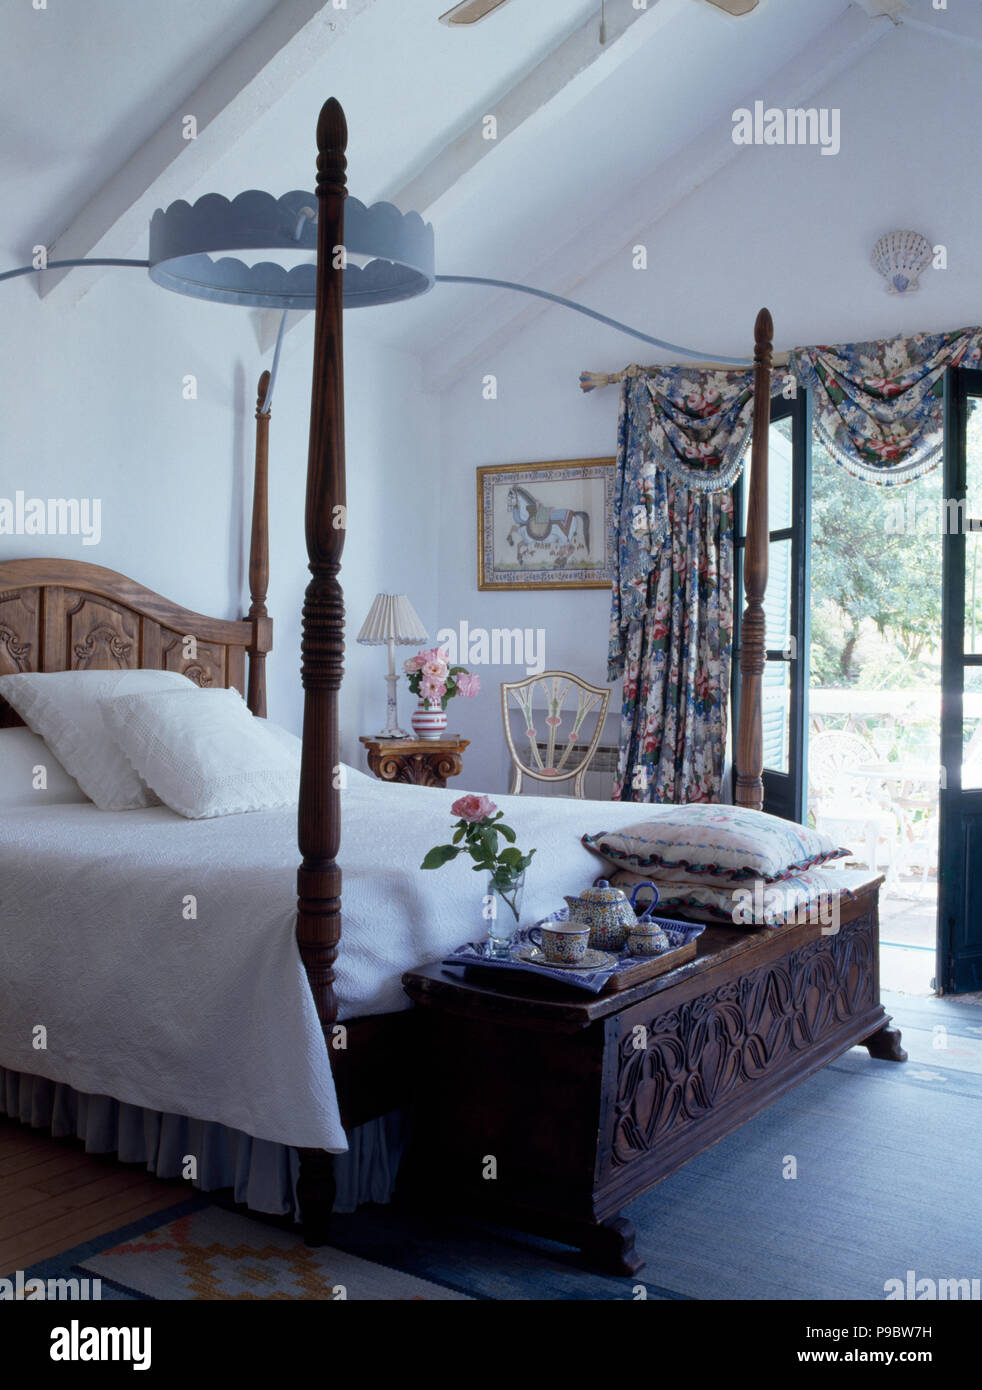 Vintage Four Poster Bed In White Spanish Bedroom With A Carved